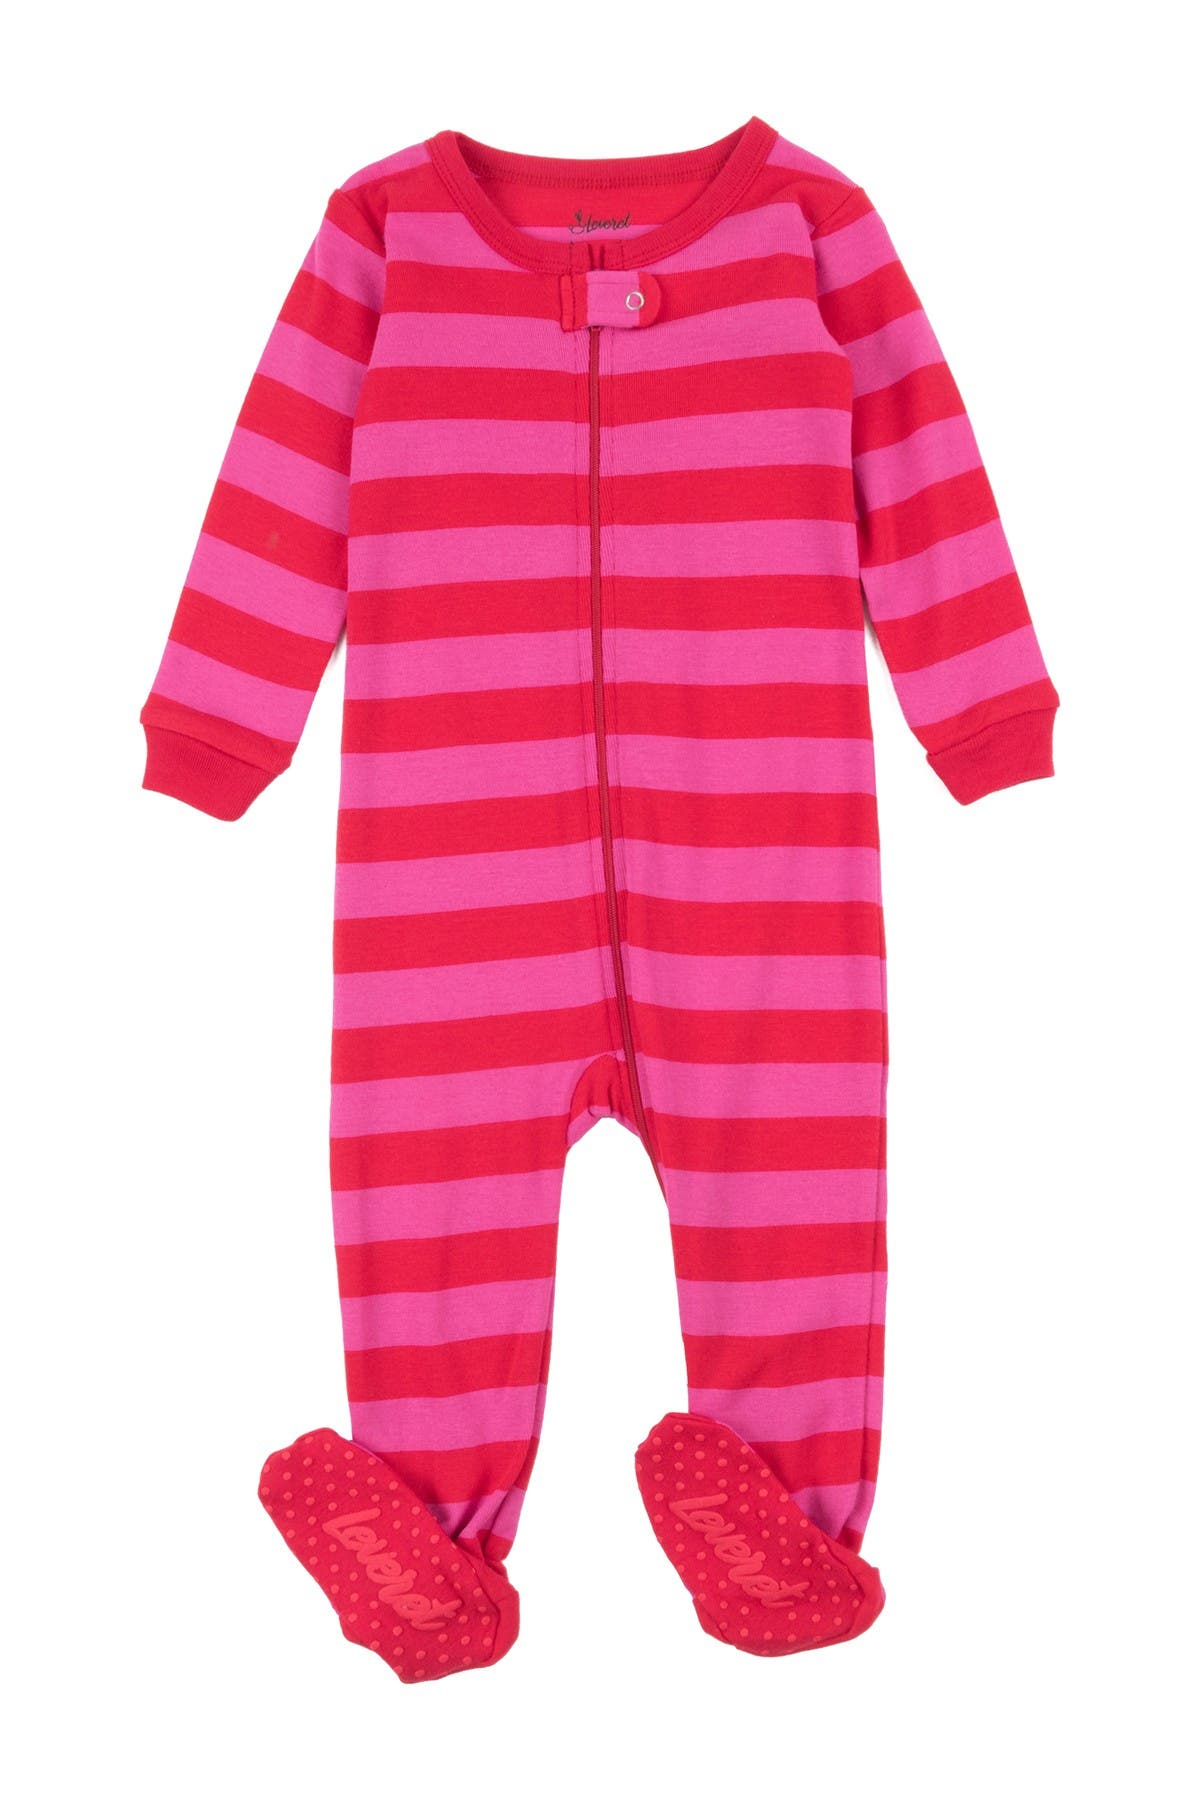 Image of Leveret Red and Pink Stripes Footed Sleeper Pajama